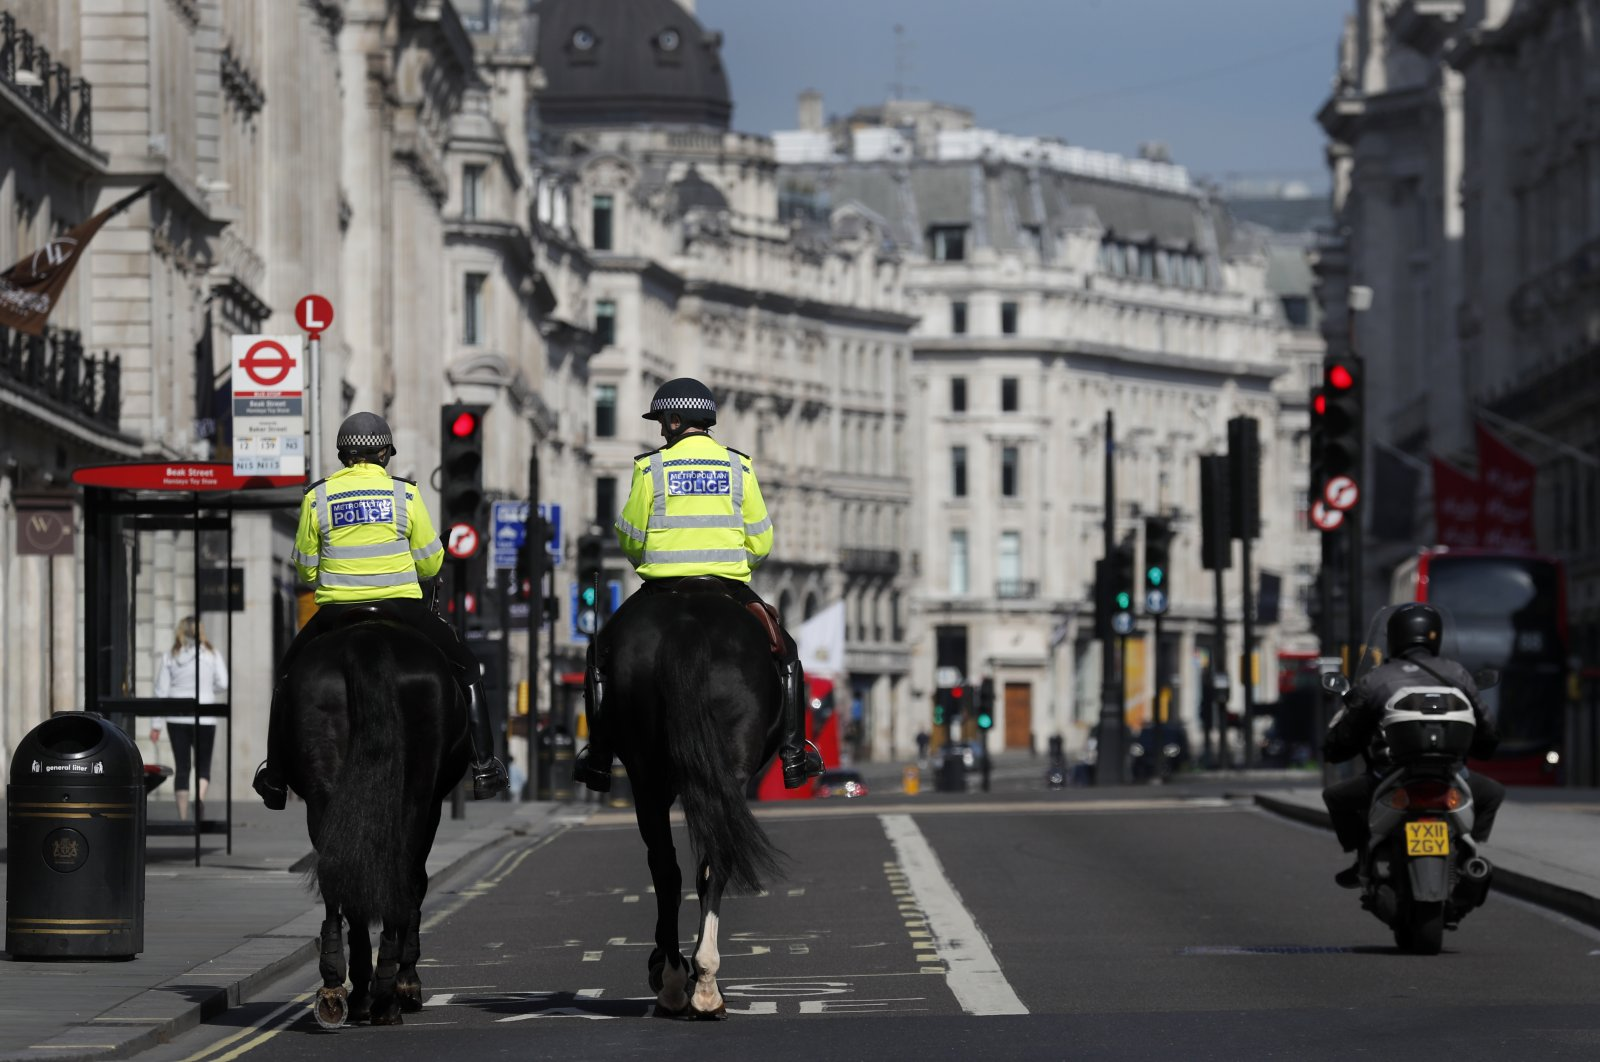 Mounted police officers patrol along a deserted Regent Street in London, as the U.K. is in lockdown to help curb the spread of the coronavirus, April 15, 2020. (AP Photo)